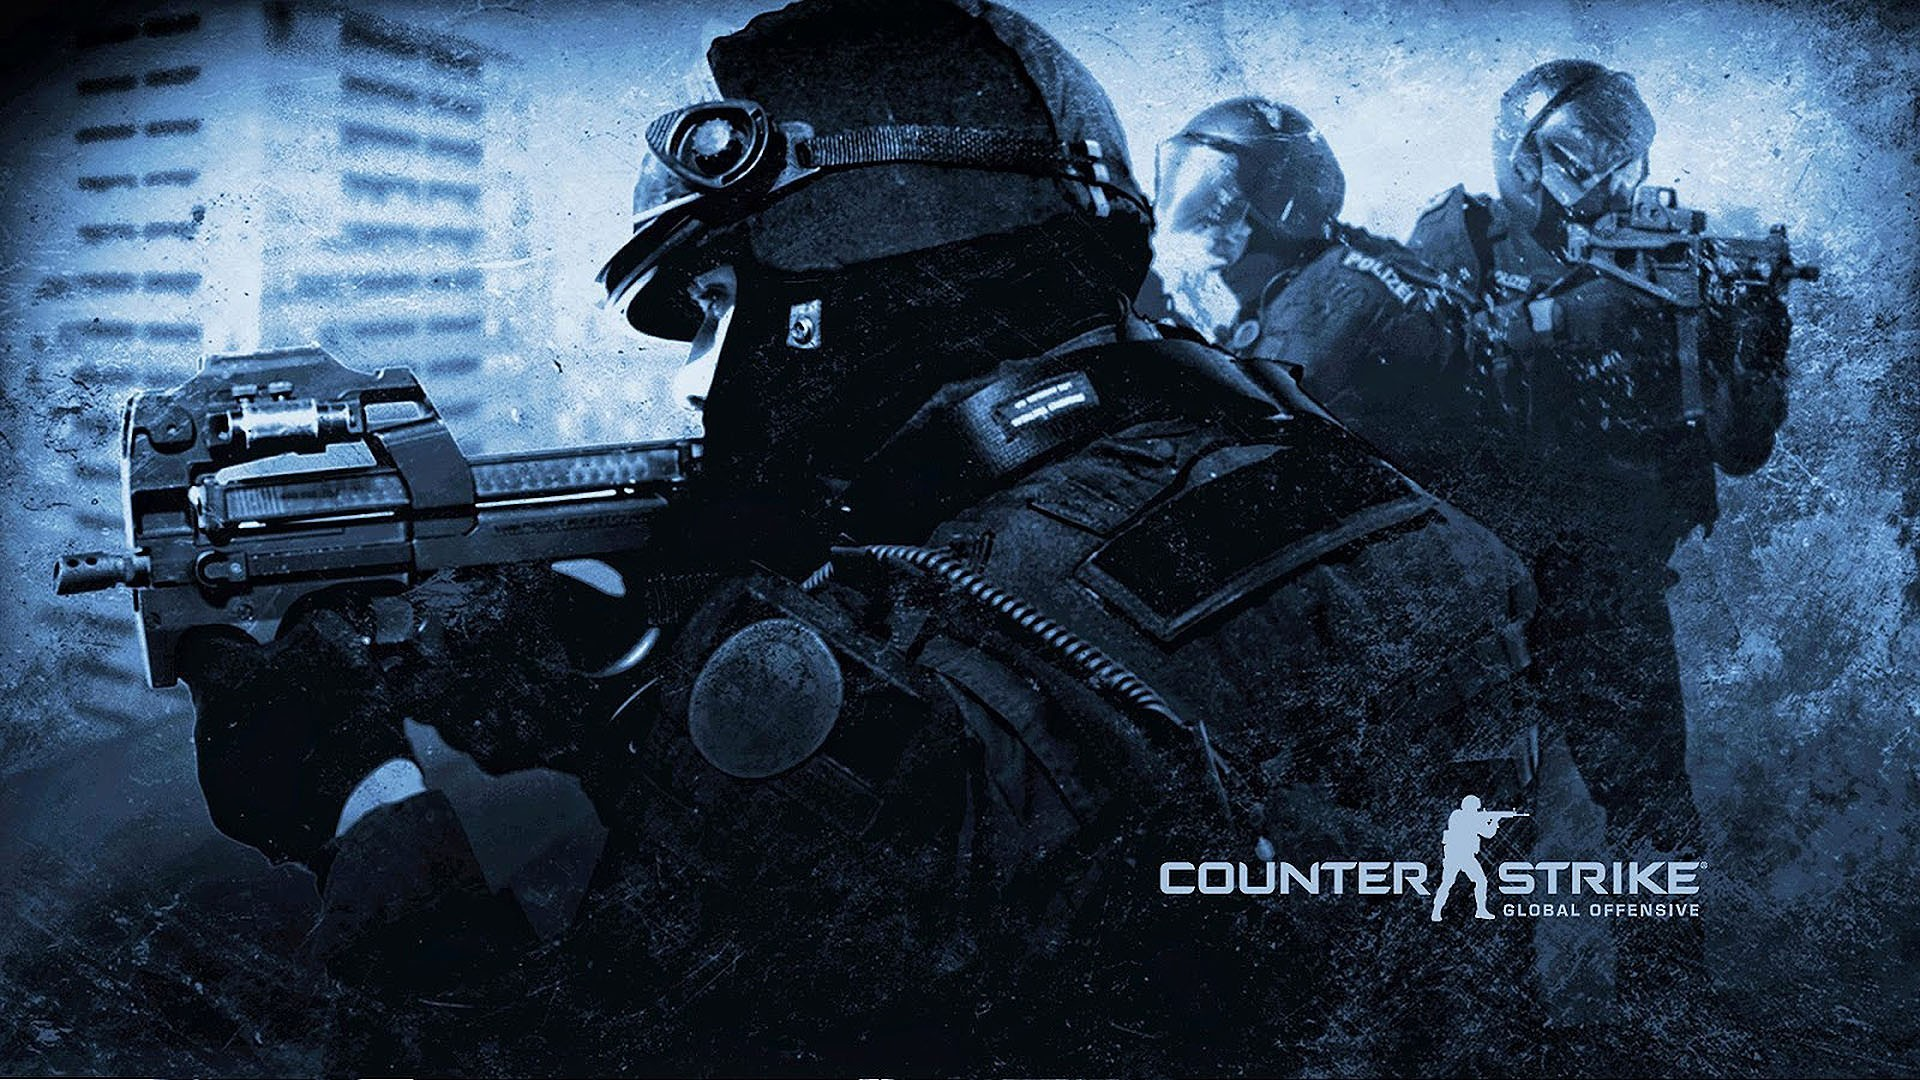 Counter-Strike: Global Offensive marketing image